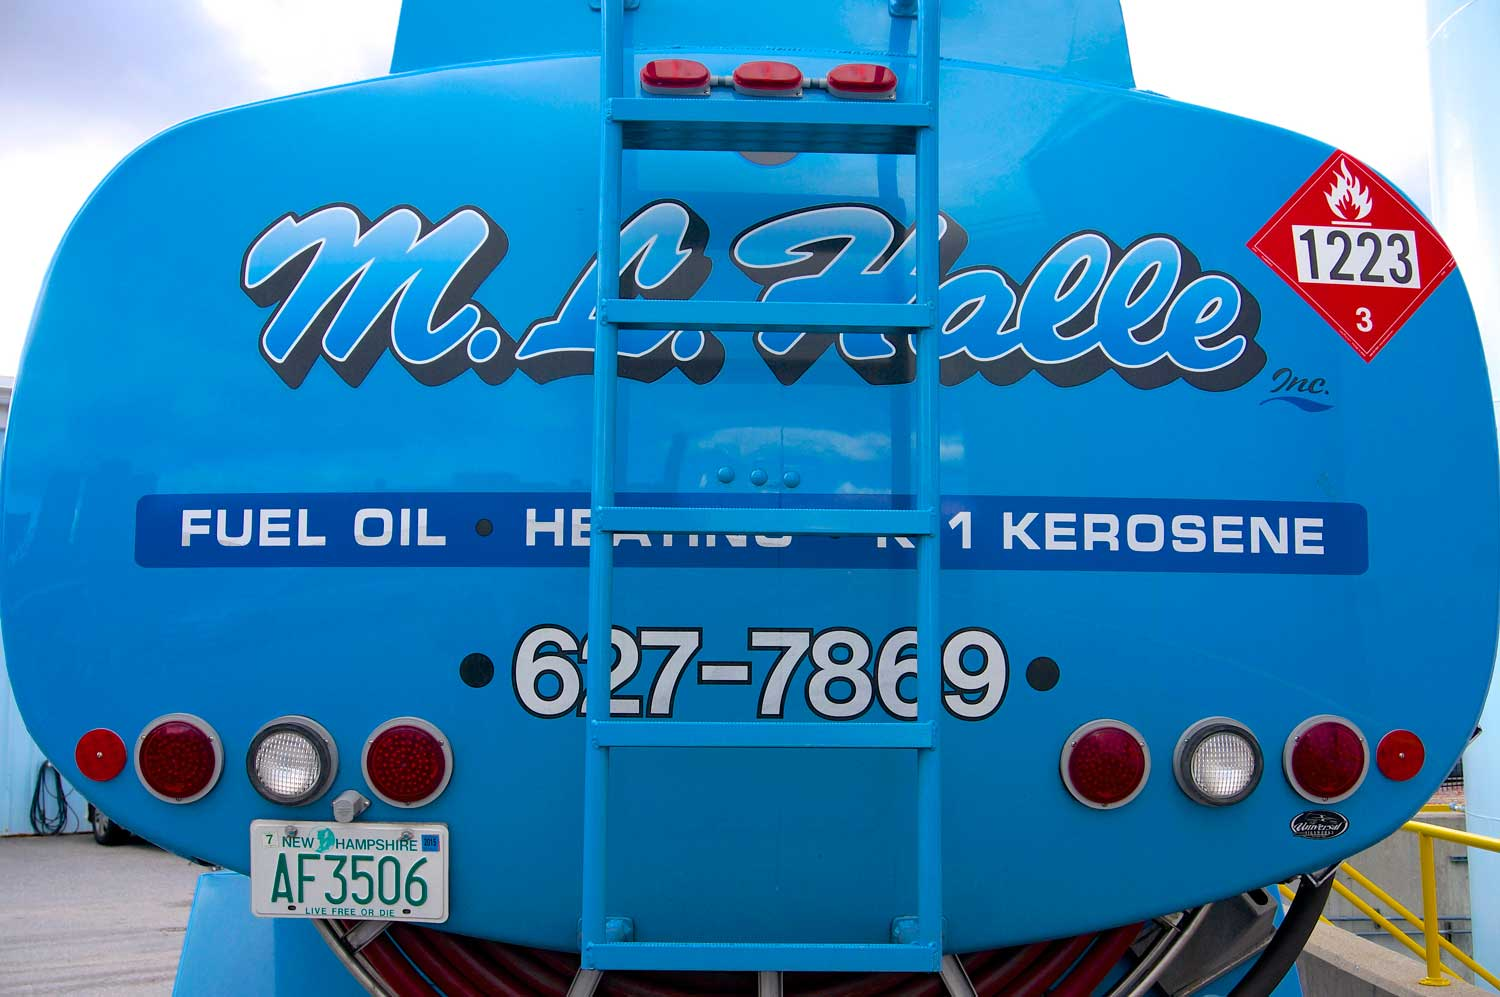 Oil Heat Emergency? Call us 24/7 365 Days a Year at (603) 627-7869